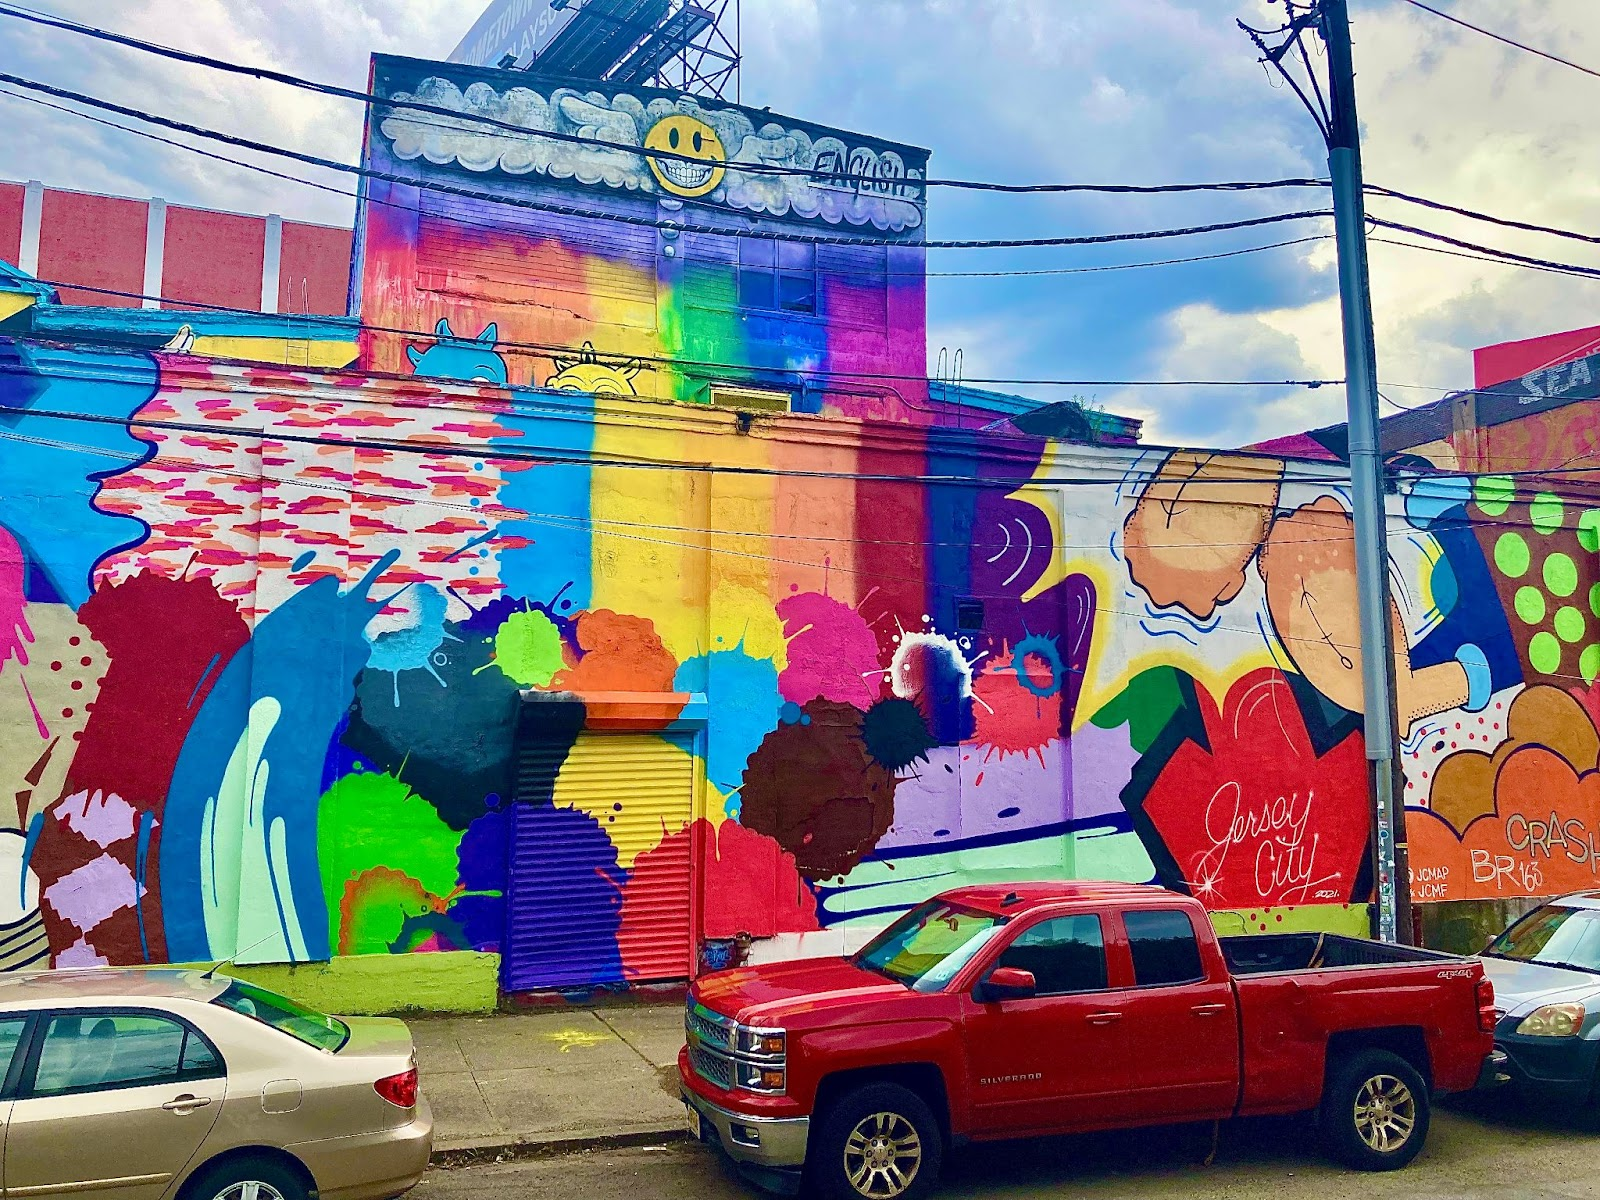 Inside Look at Jersey City's Burgeoning Street Art. Mural by John CRASH Matos, with art by Ron English in the background. Monmouth St. & 13th St. Photo by Vittoria Benzine.